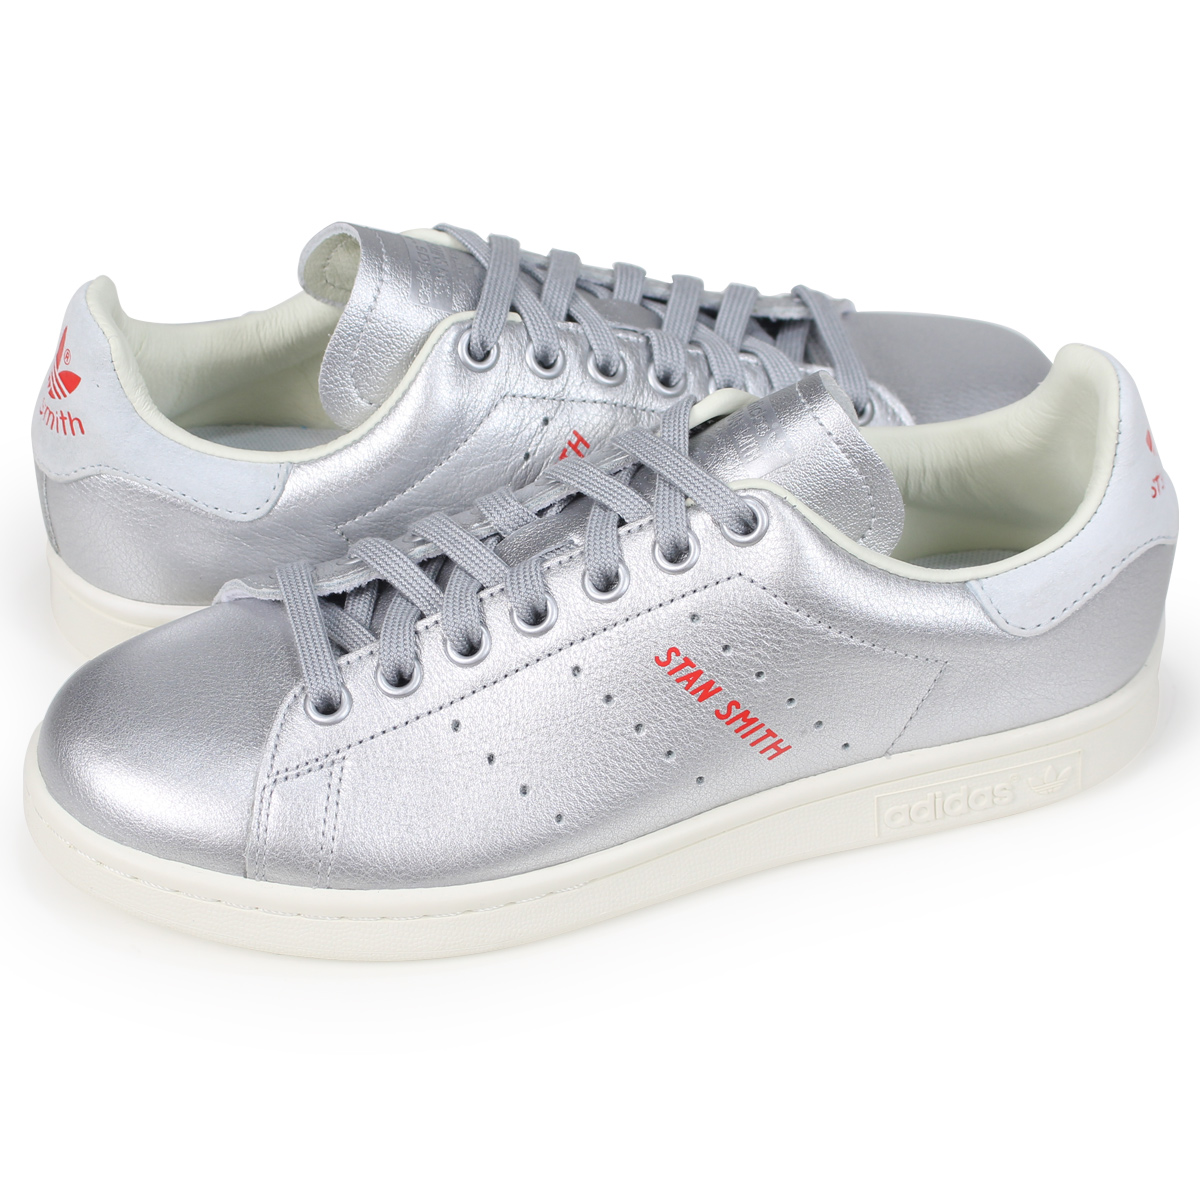 detailed look 38a37 6fc02 adidas Originals STAN SMITH W Adidas originals Stan Smith Ladys sneakers  B41750 silver load planned Shinnyu load in reservation product 620  containing